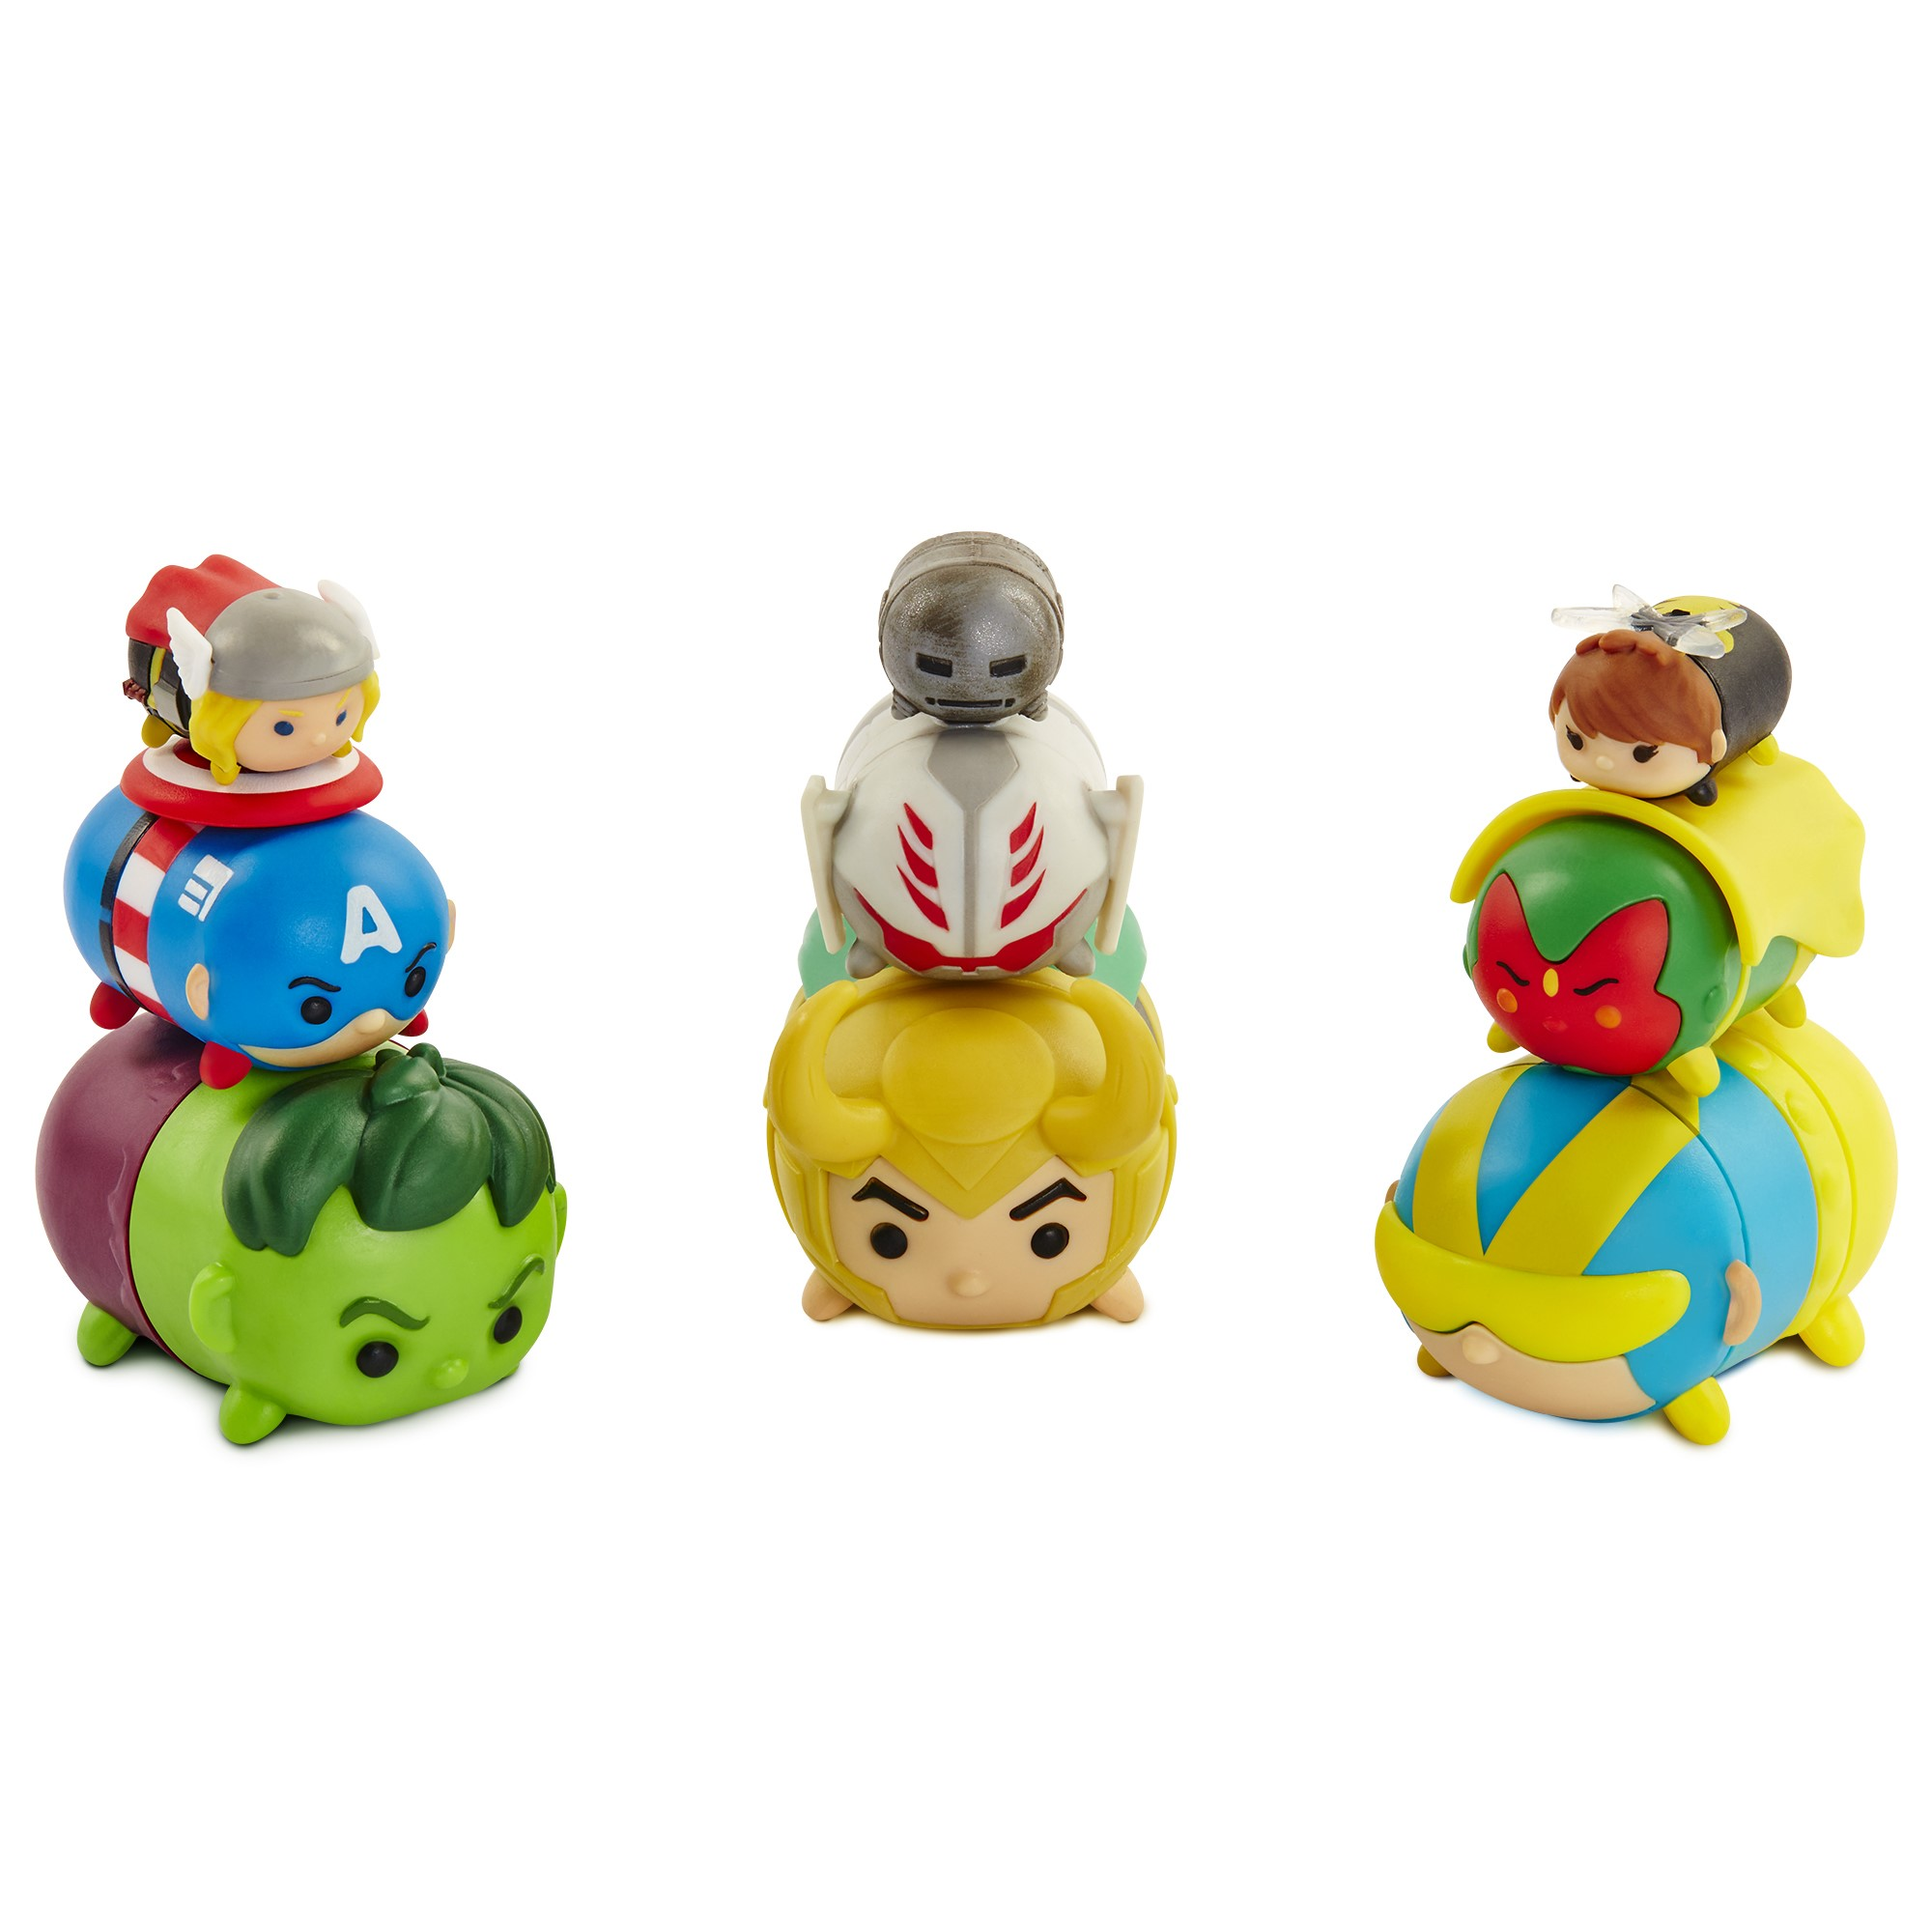 Marvel Tsum Tsum 9-Pack Figures - Giant Man, Loki, Hulk, Vision, Captain America, Ultron, Thor, Wasp & Iron Mark